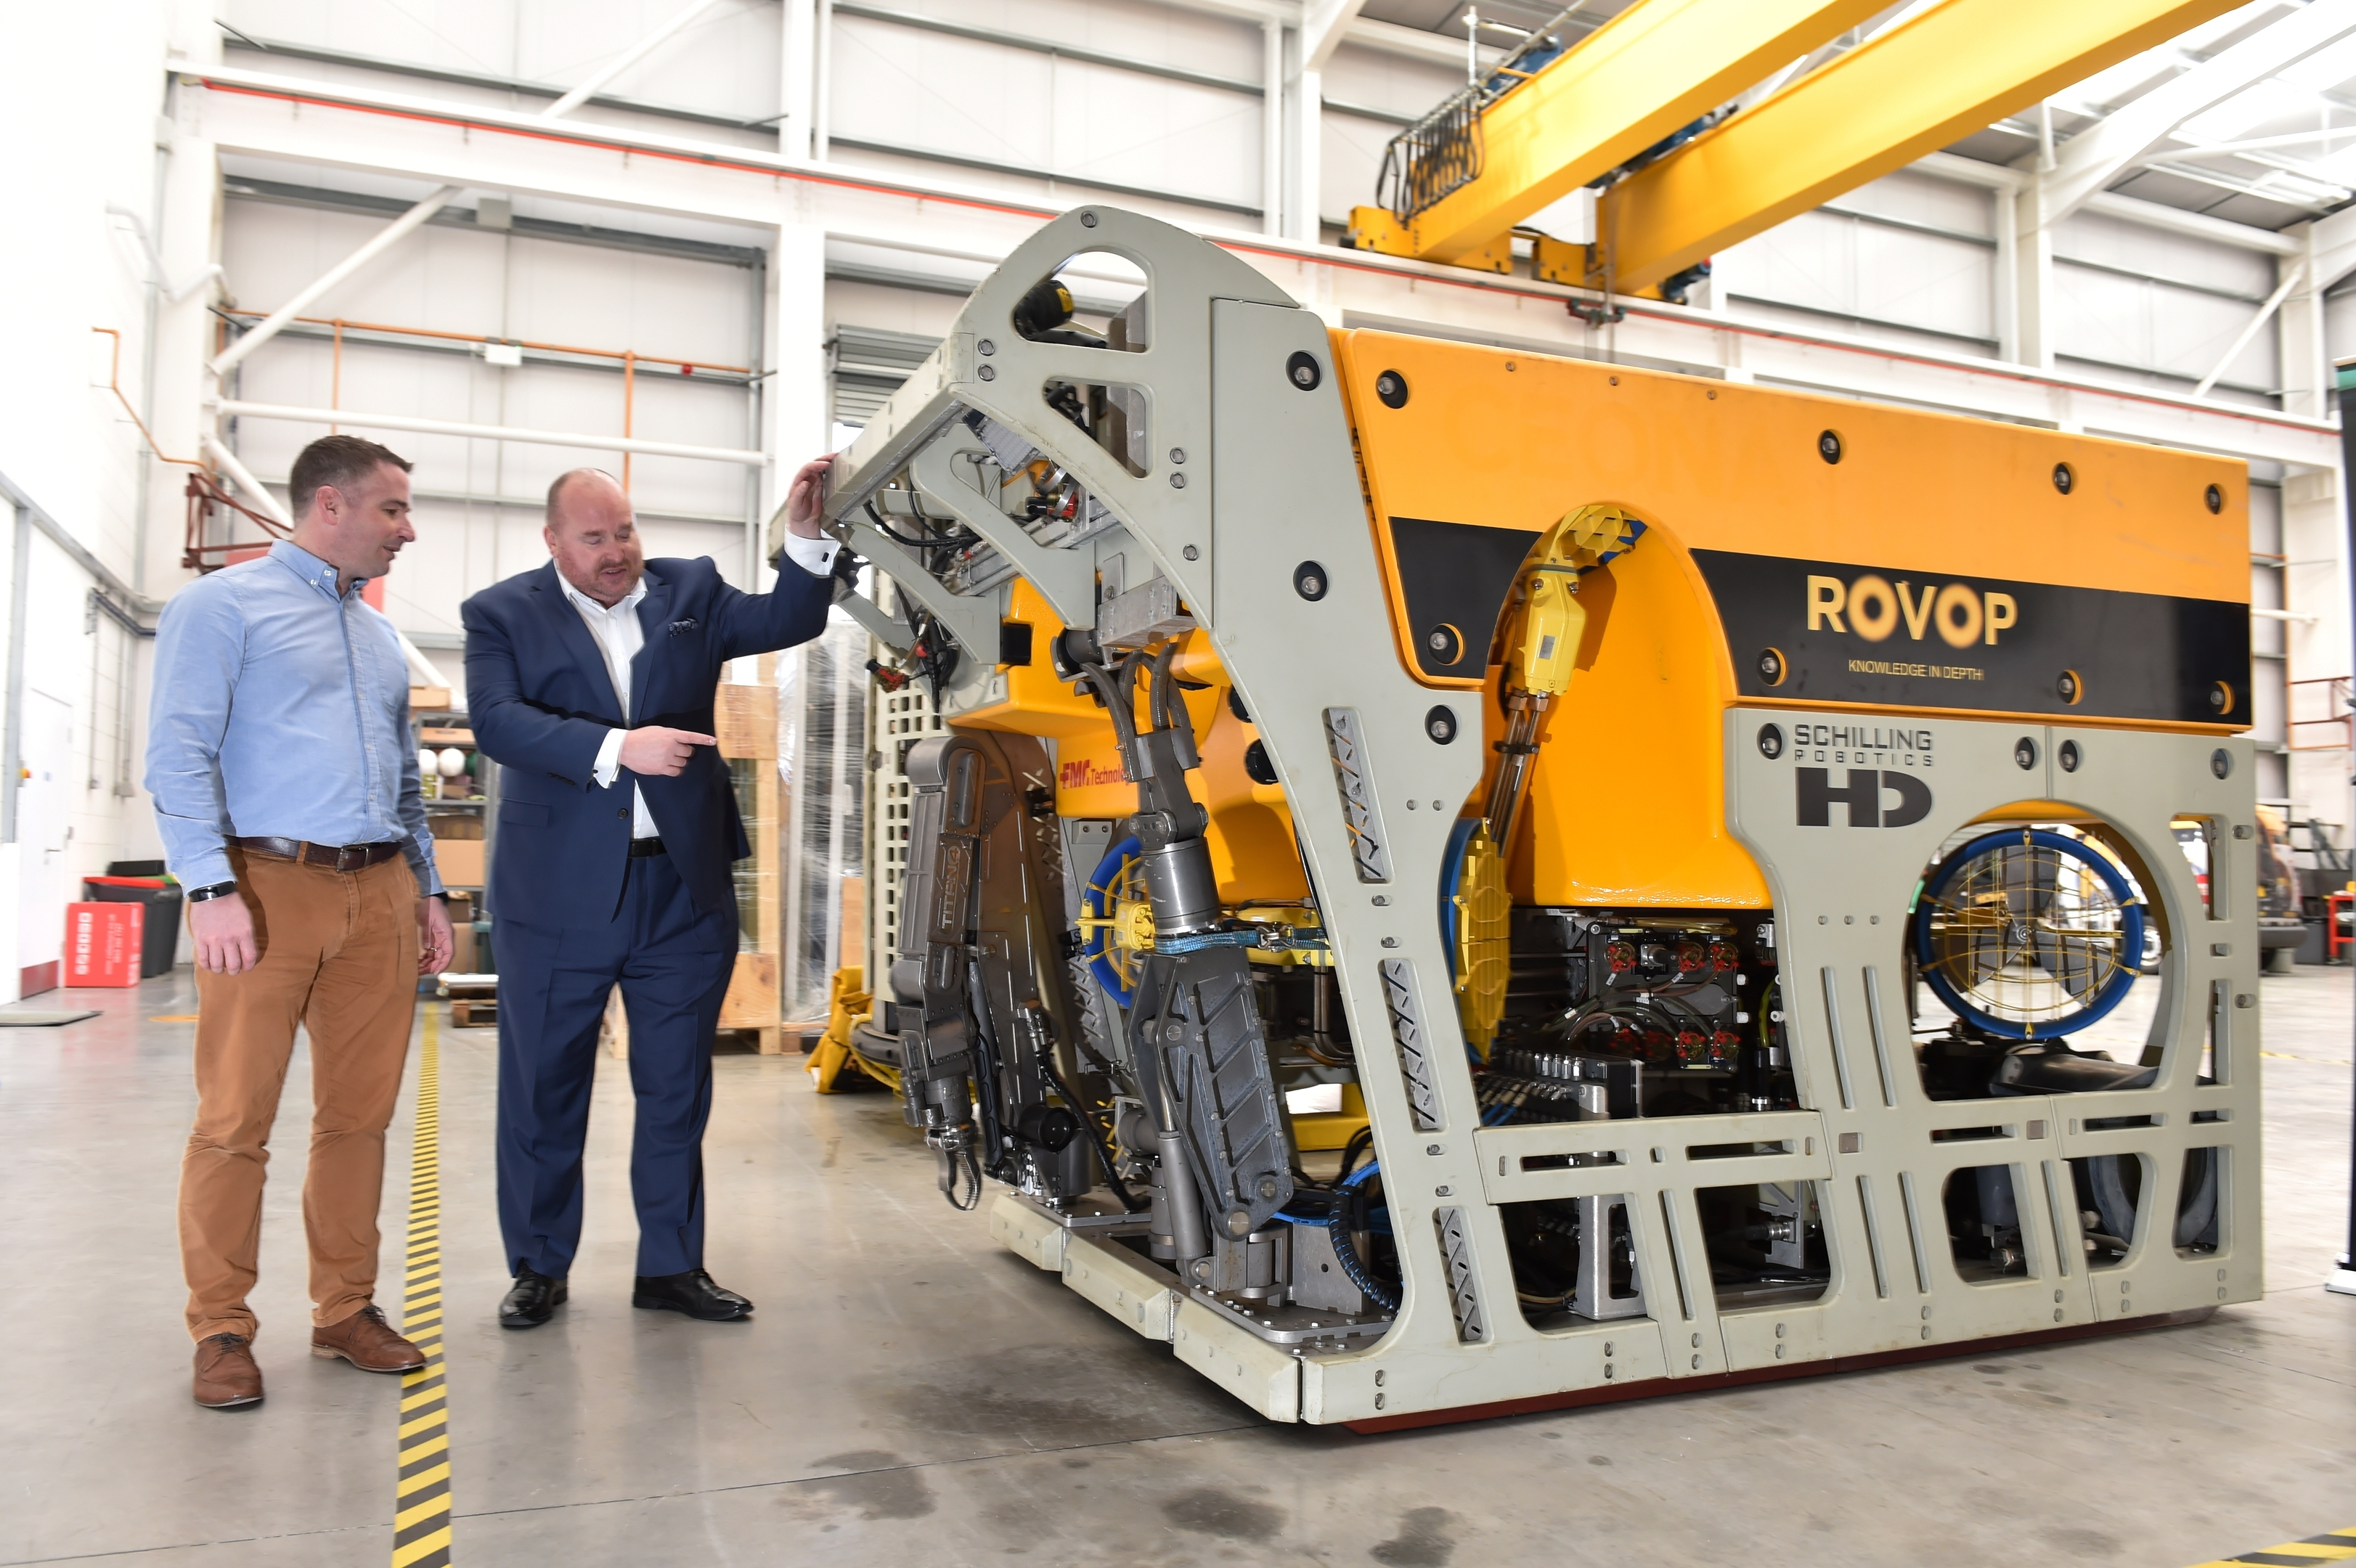 Business - Aberdeen-Houston Gateway delegates visited Rovop, who will make expansion announcement. Euan Tait (Commercial Director, ROVOP) and Jeffrey Blair (Director, Europe, Middle East and Africa - Greater Houston Partnership).